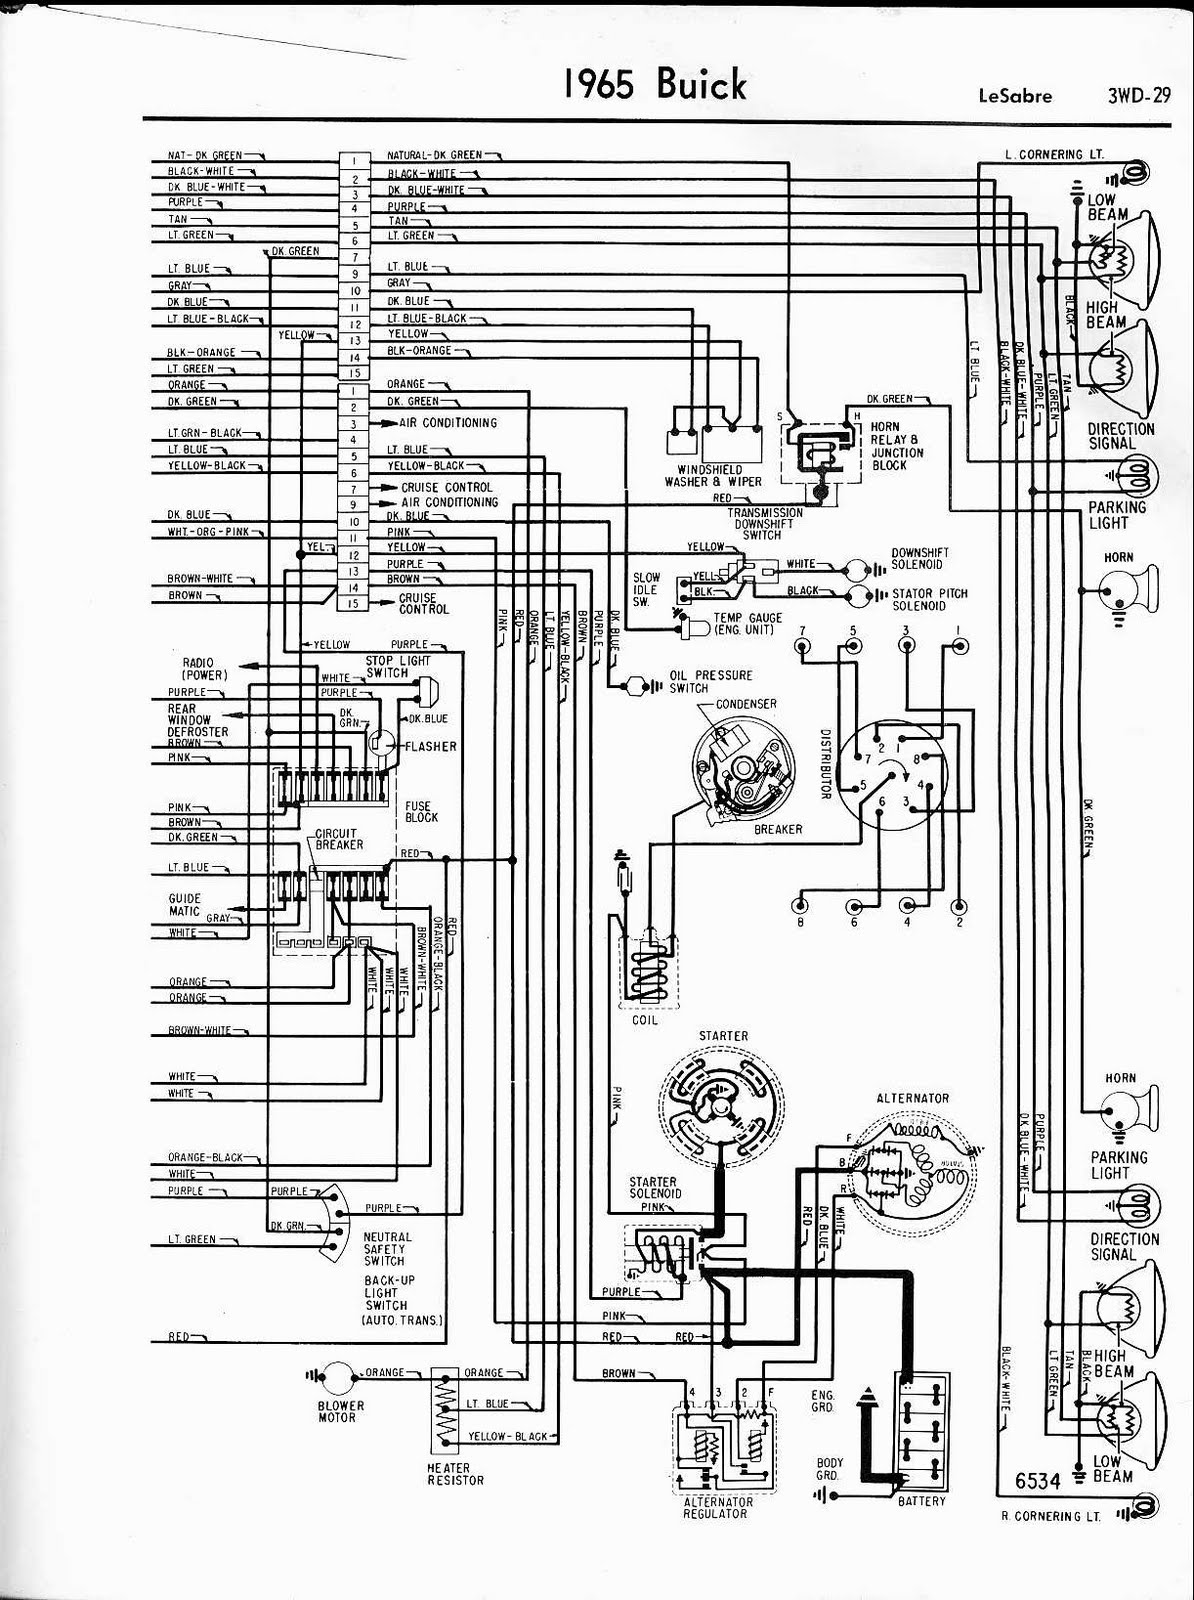 1965+Buick+LeSabre+Front+Side Xh Radio Wiring Diagram on radio transmission diagram, radio schematic diagrams, nissan 300zx diagram, circuit diagram, mitsubishi galant radio diagram, 2005 mazda 6 radio diagram, radio harness diagram, radio block diagram,